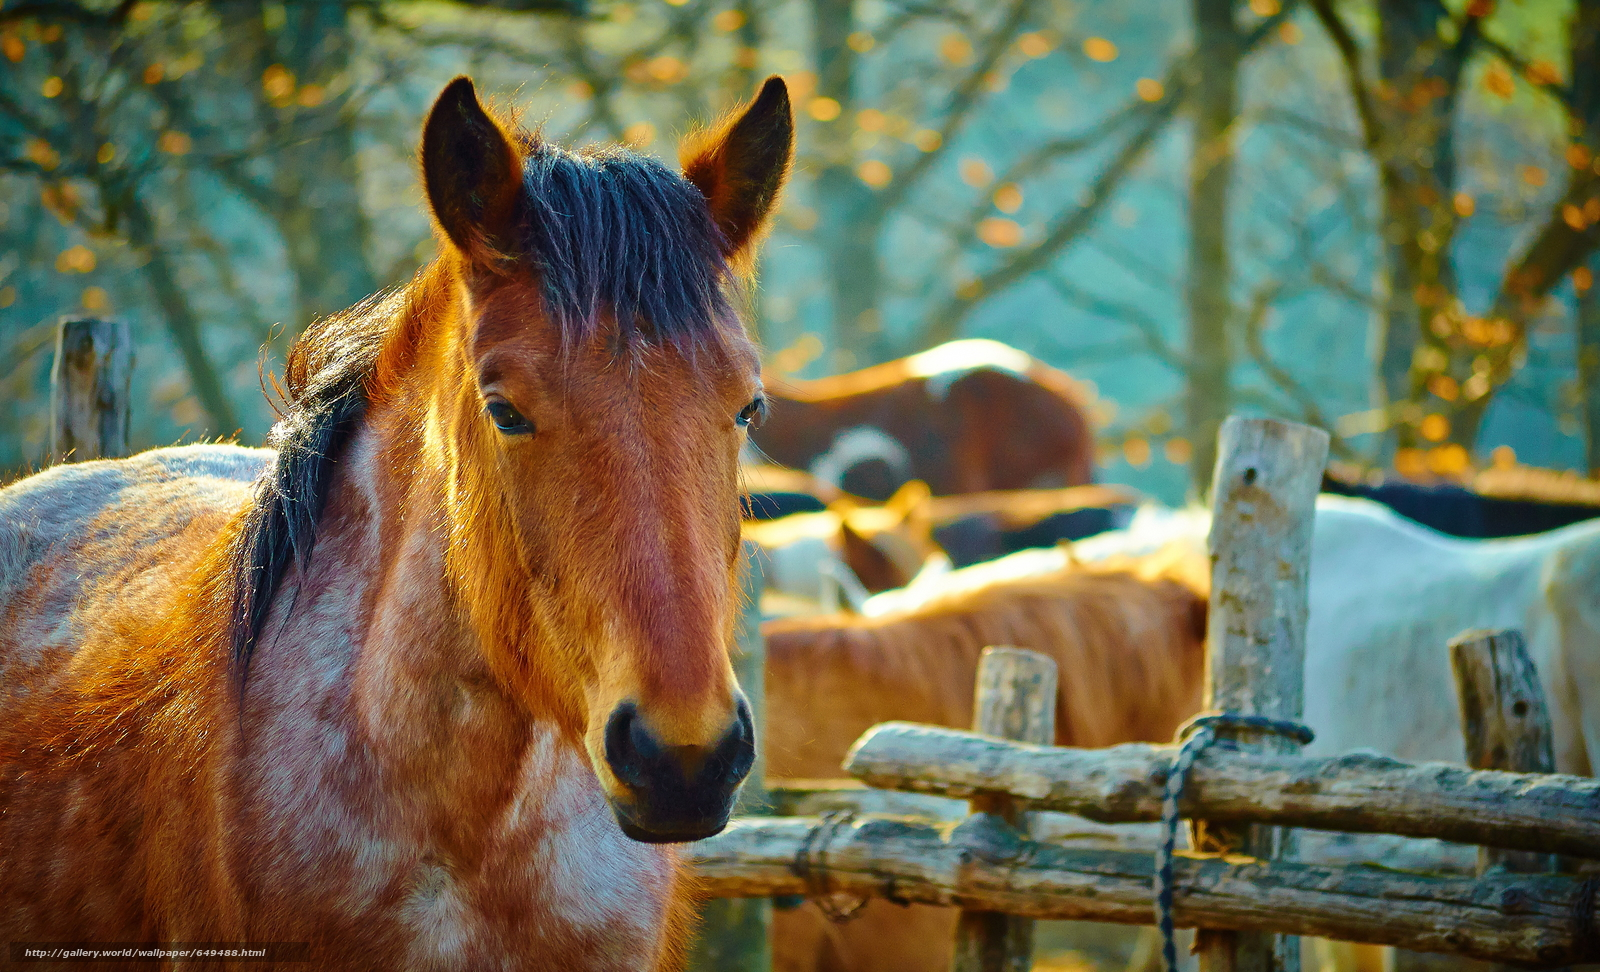 Download wallpaper horse,  horse,  horse,  Horses free desktop wallpaper in the resolution 3840x2332 — picture №649488